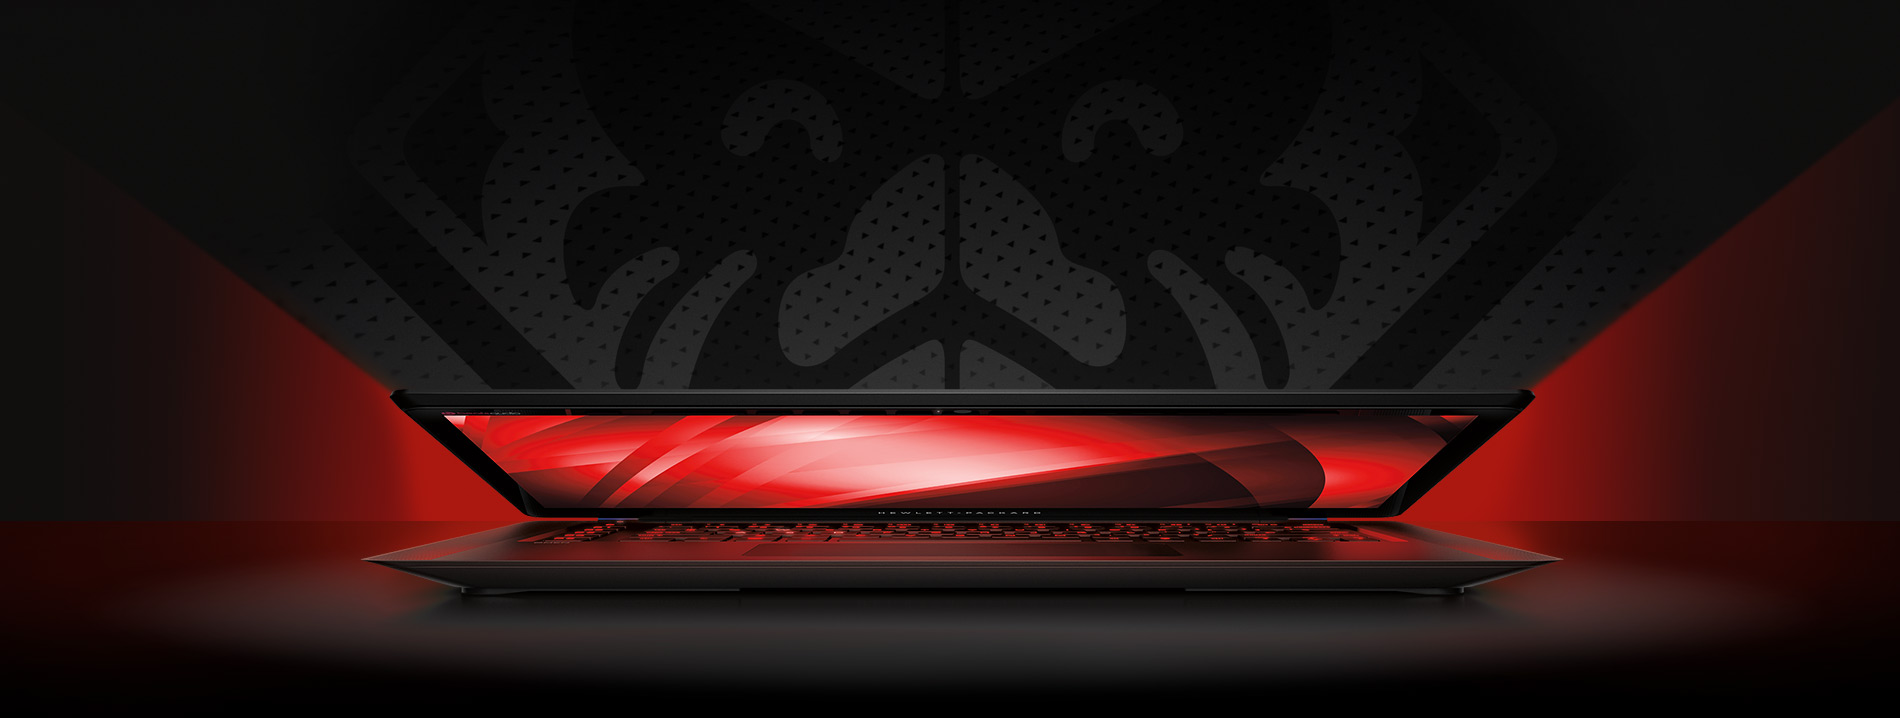 47 crimson omen wallpaper on wallpapersafari - Omen wallpaper ...